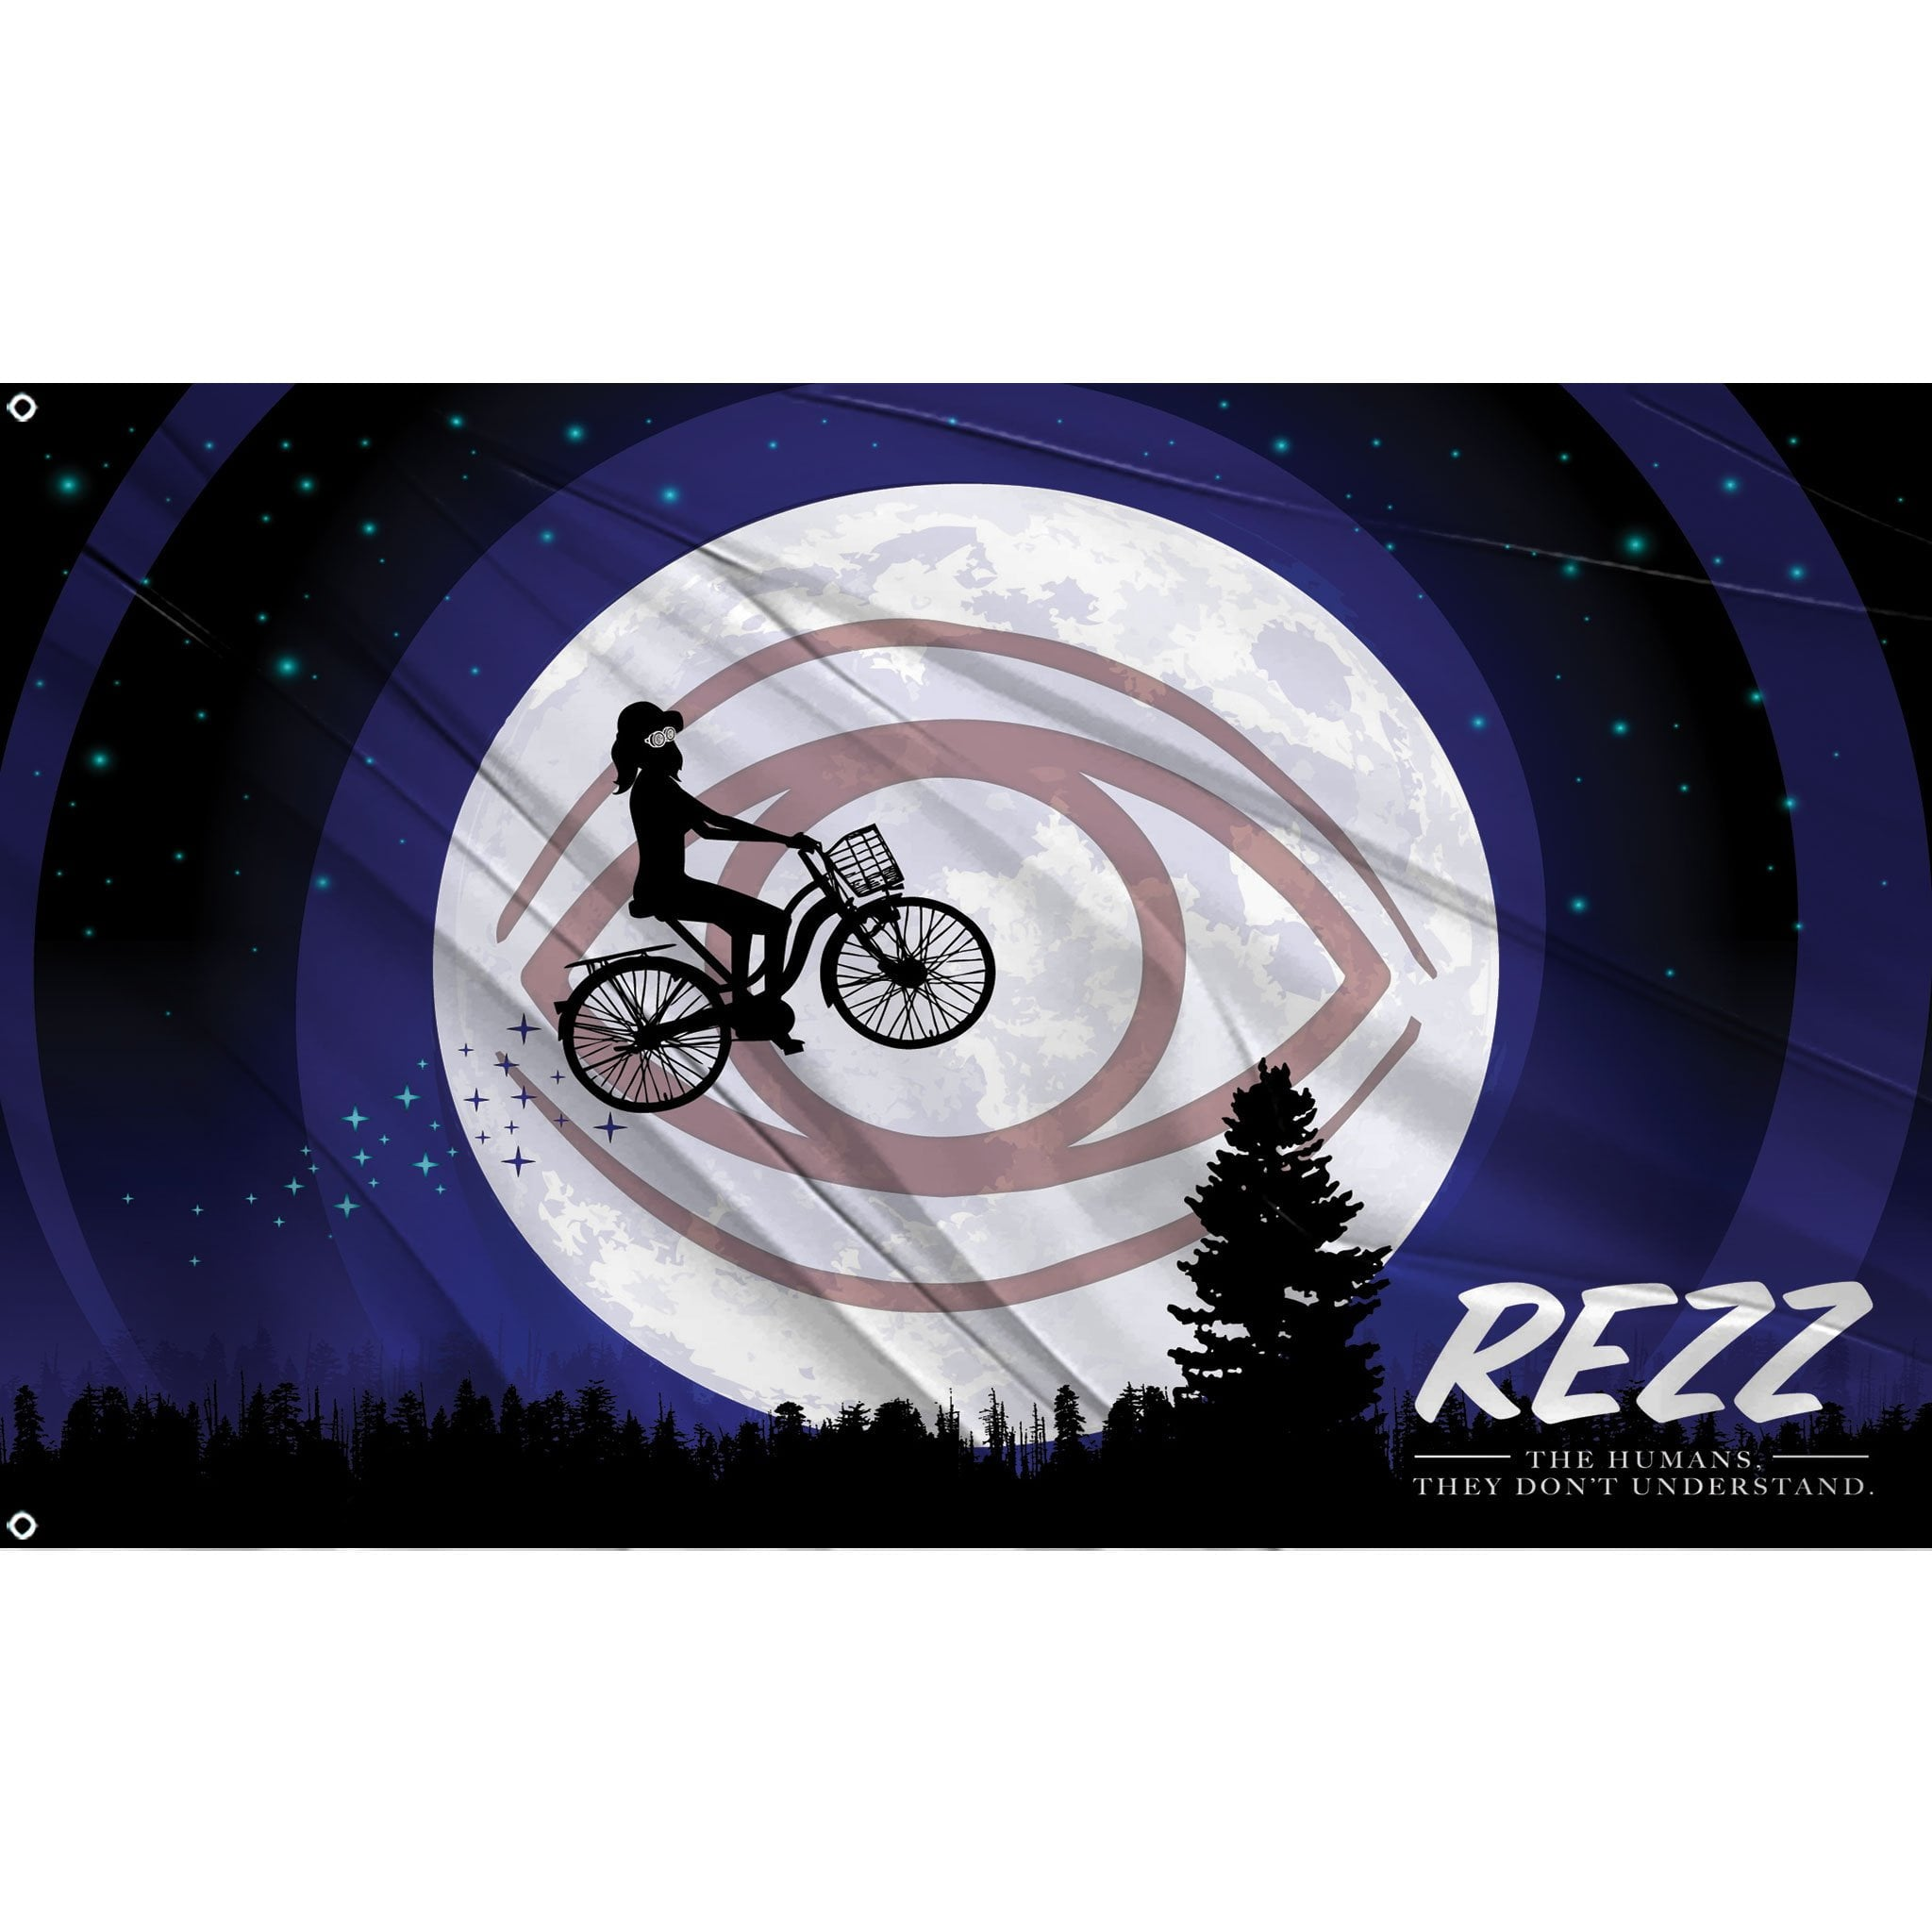 Rezz Flag The Humans Don't Understand